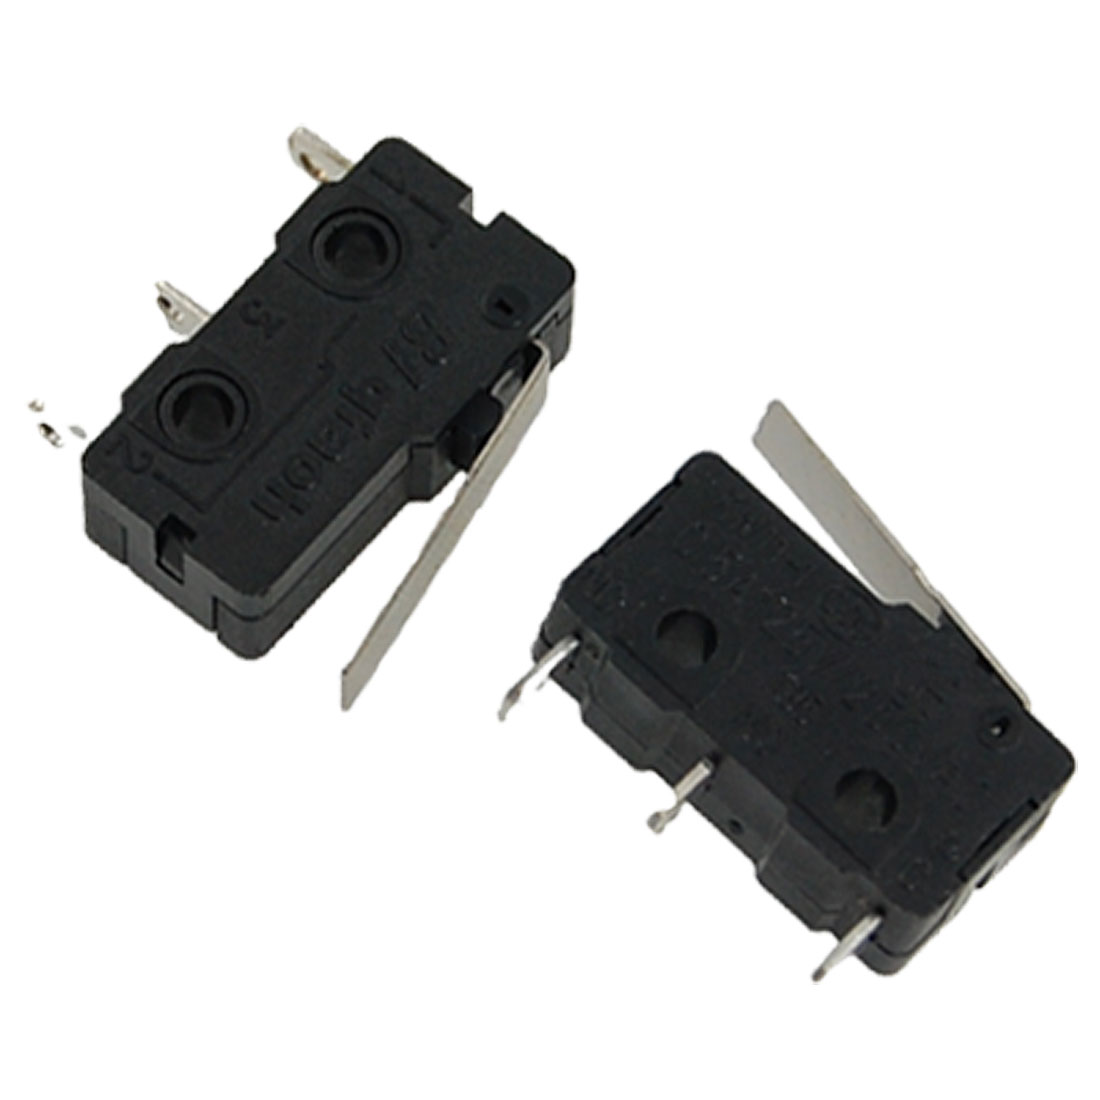 2 Pcs KW11-1Z-0101SF2 Momentary Lever Actuator Miniature Micro Limit Switch